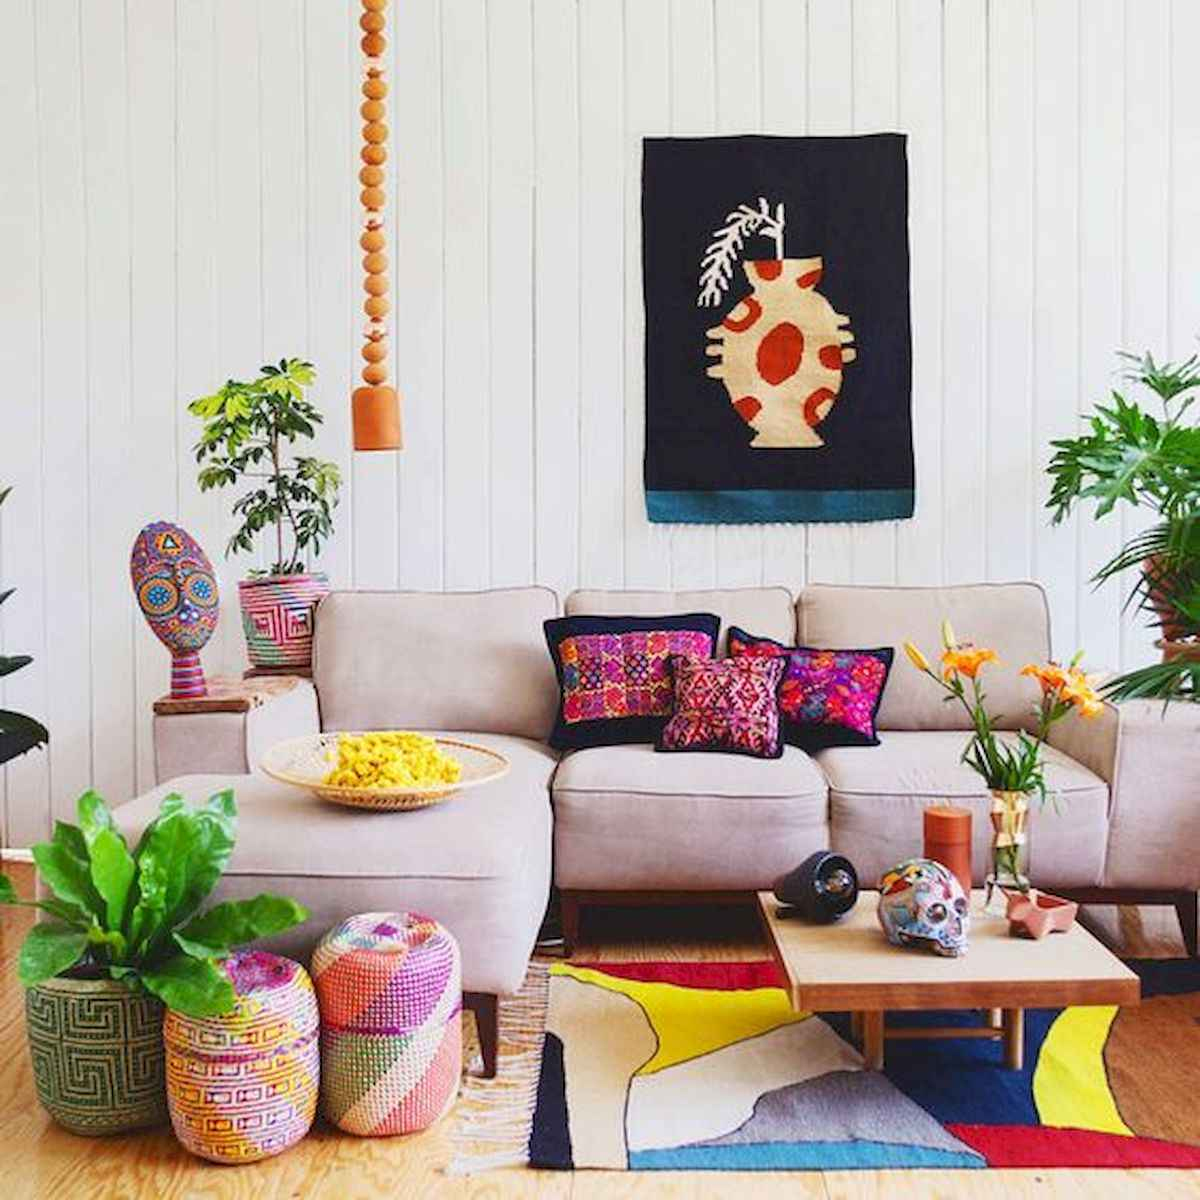 80+ Stunning Colorful Living Room Decor Ideas And Remodel for Summer Project (54)